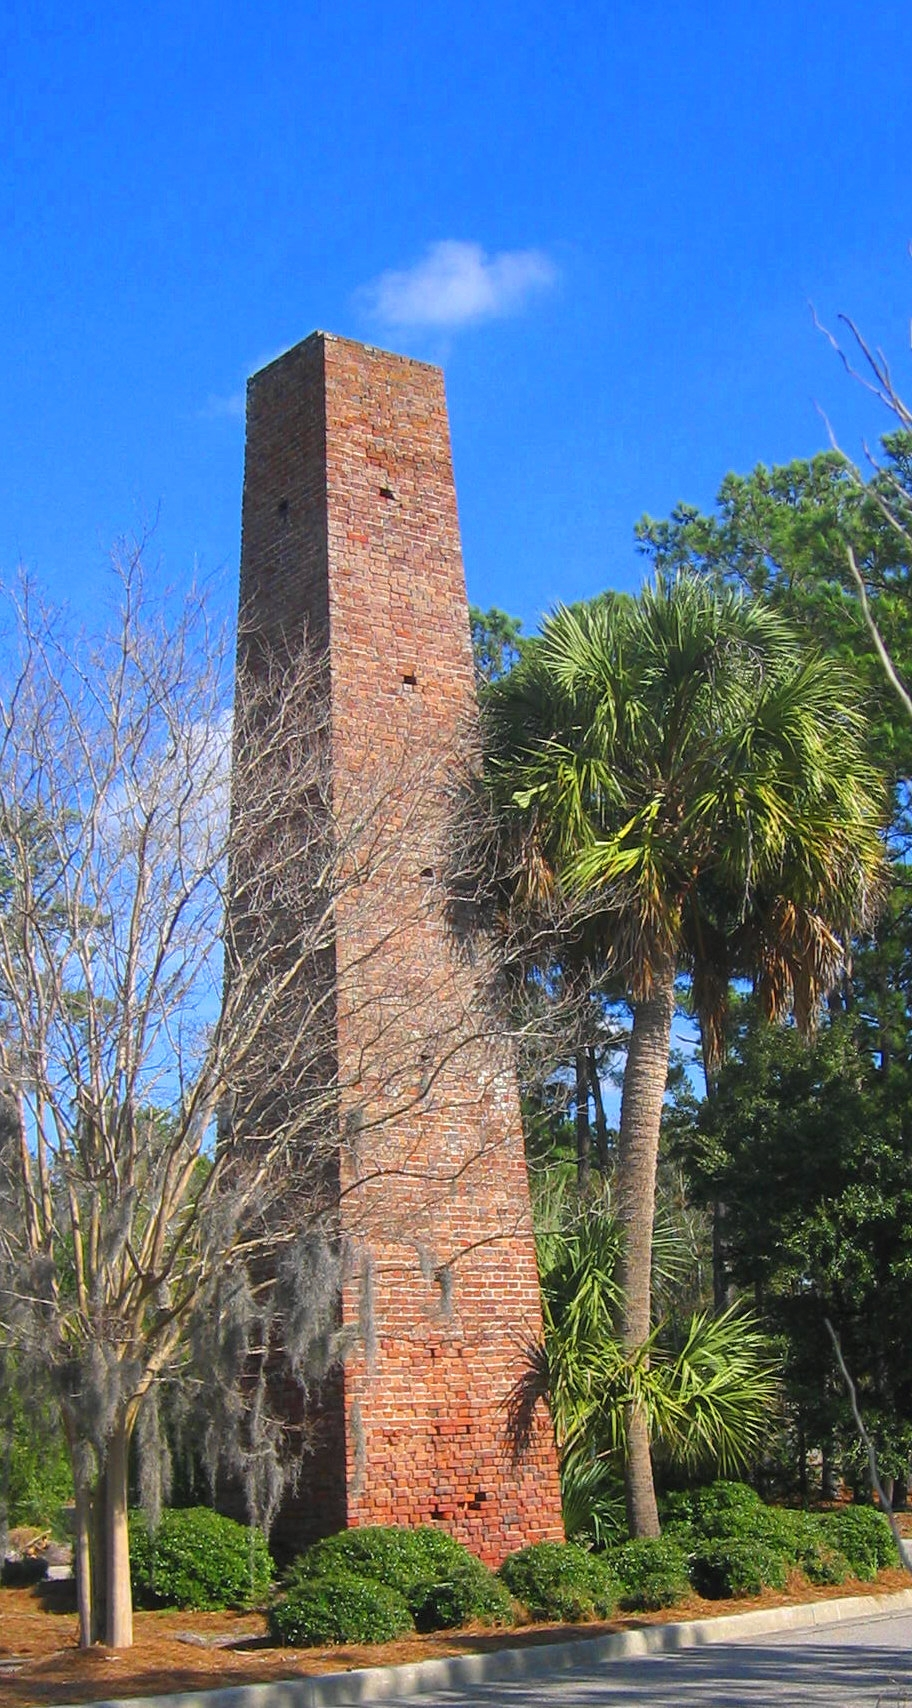 Brick chimney from brickmaking facility